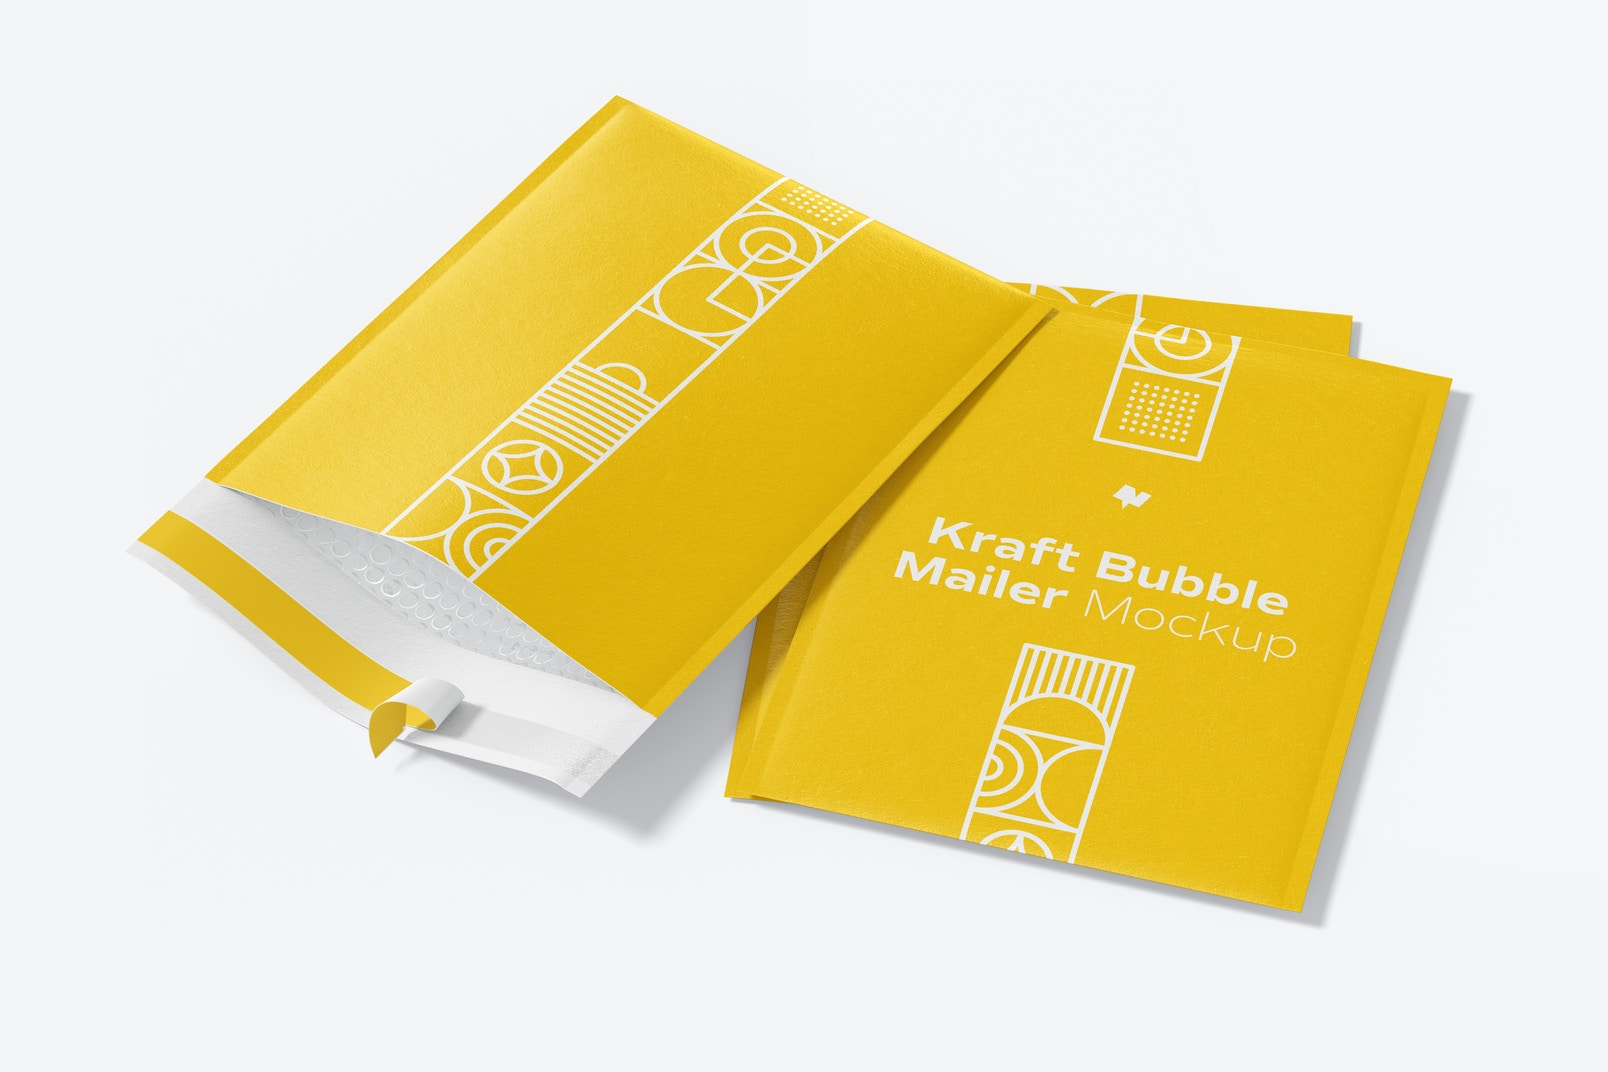 Kraft Bubble Mailers Mockup, Opened and Closed